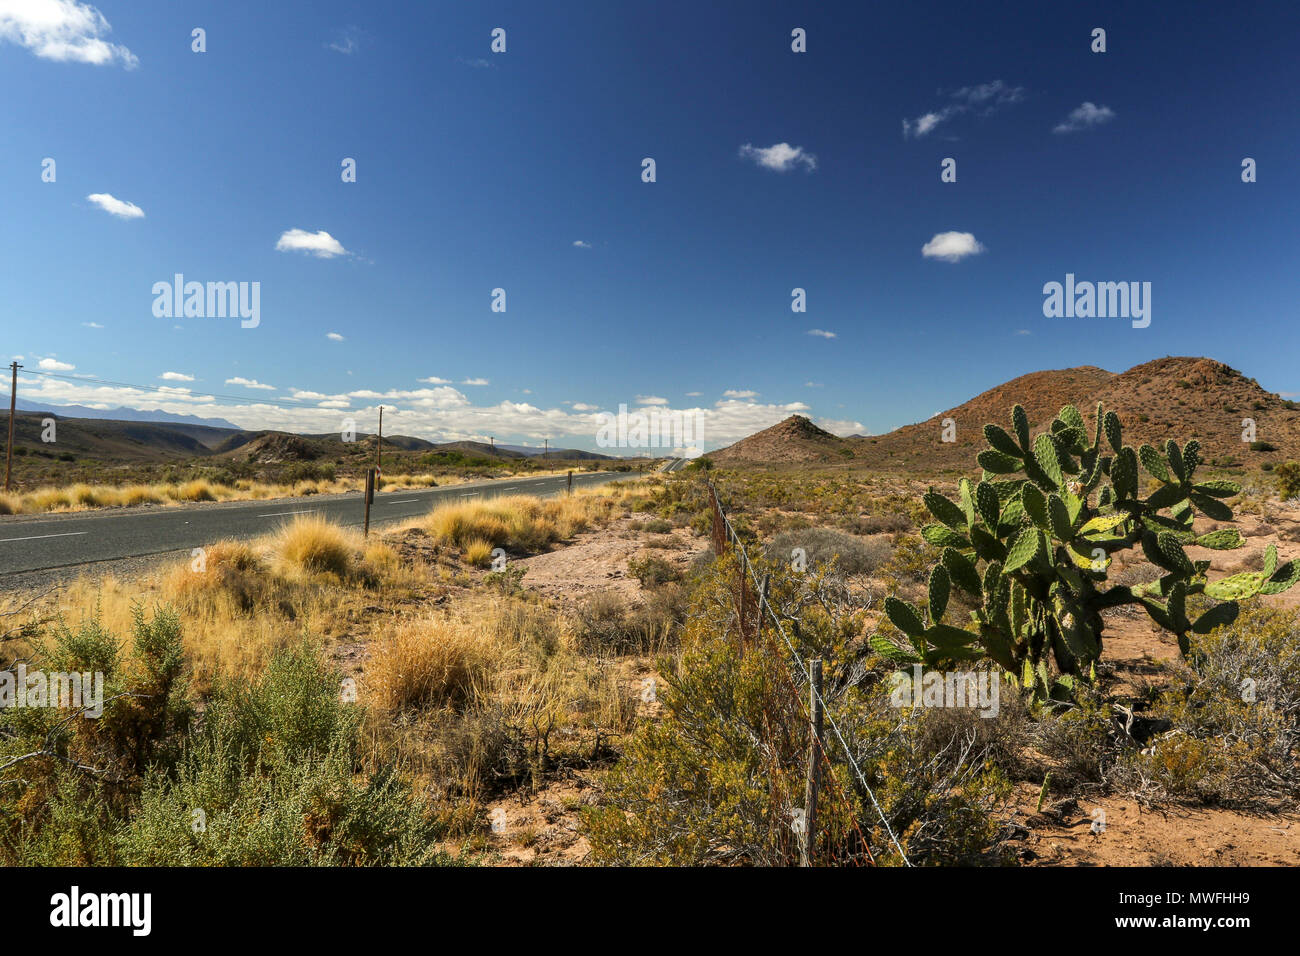 Cactus and fynbos in the landscape along the garden route, south africa - Stock Image